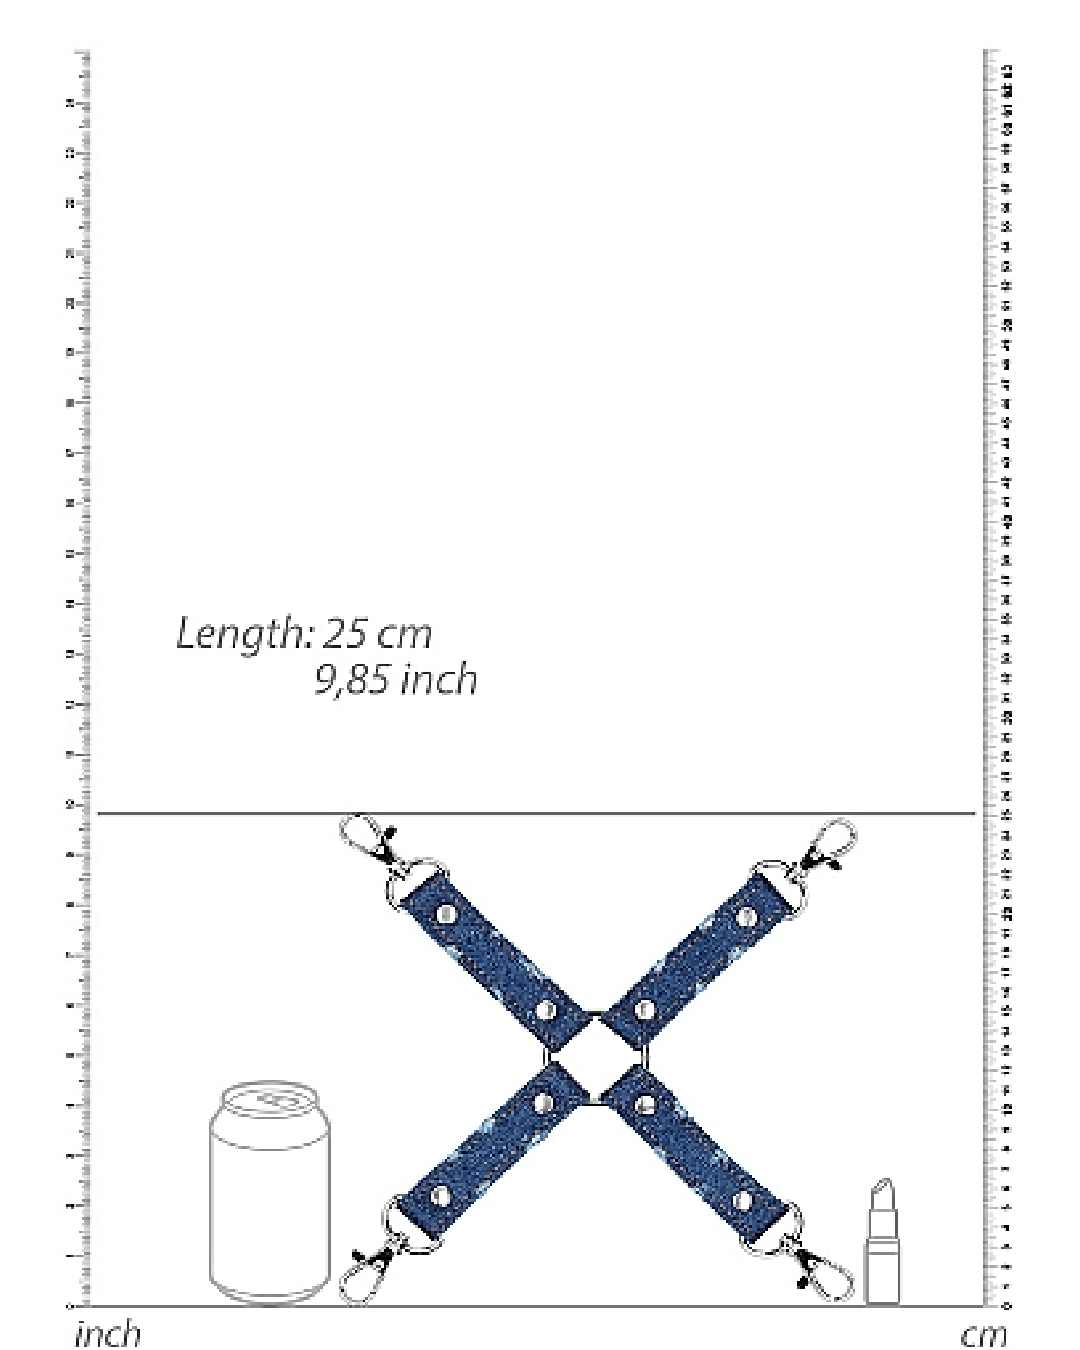 Ouch!  Roughend Denim Style Hogtie  - Blue graphic showing dimensions of product